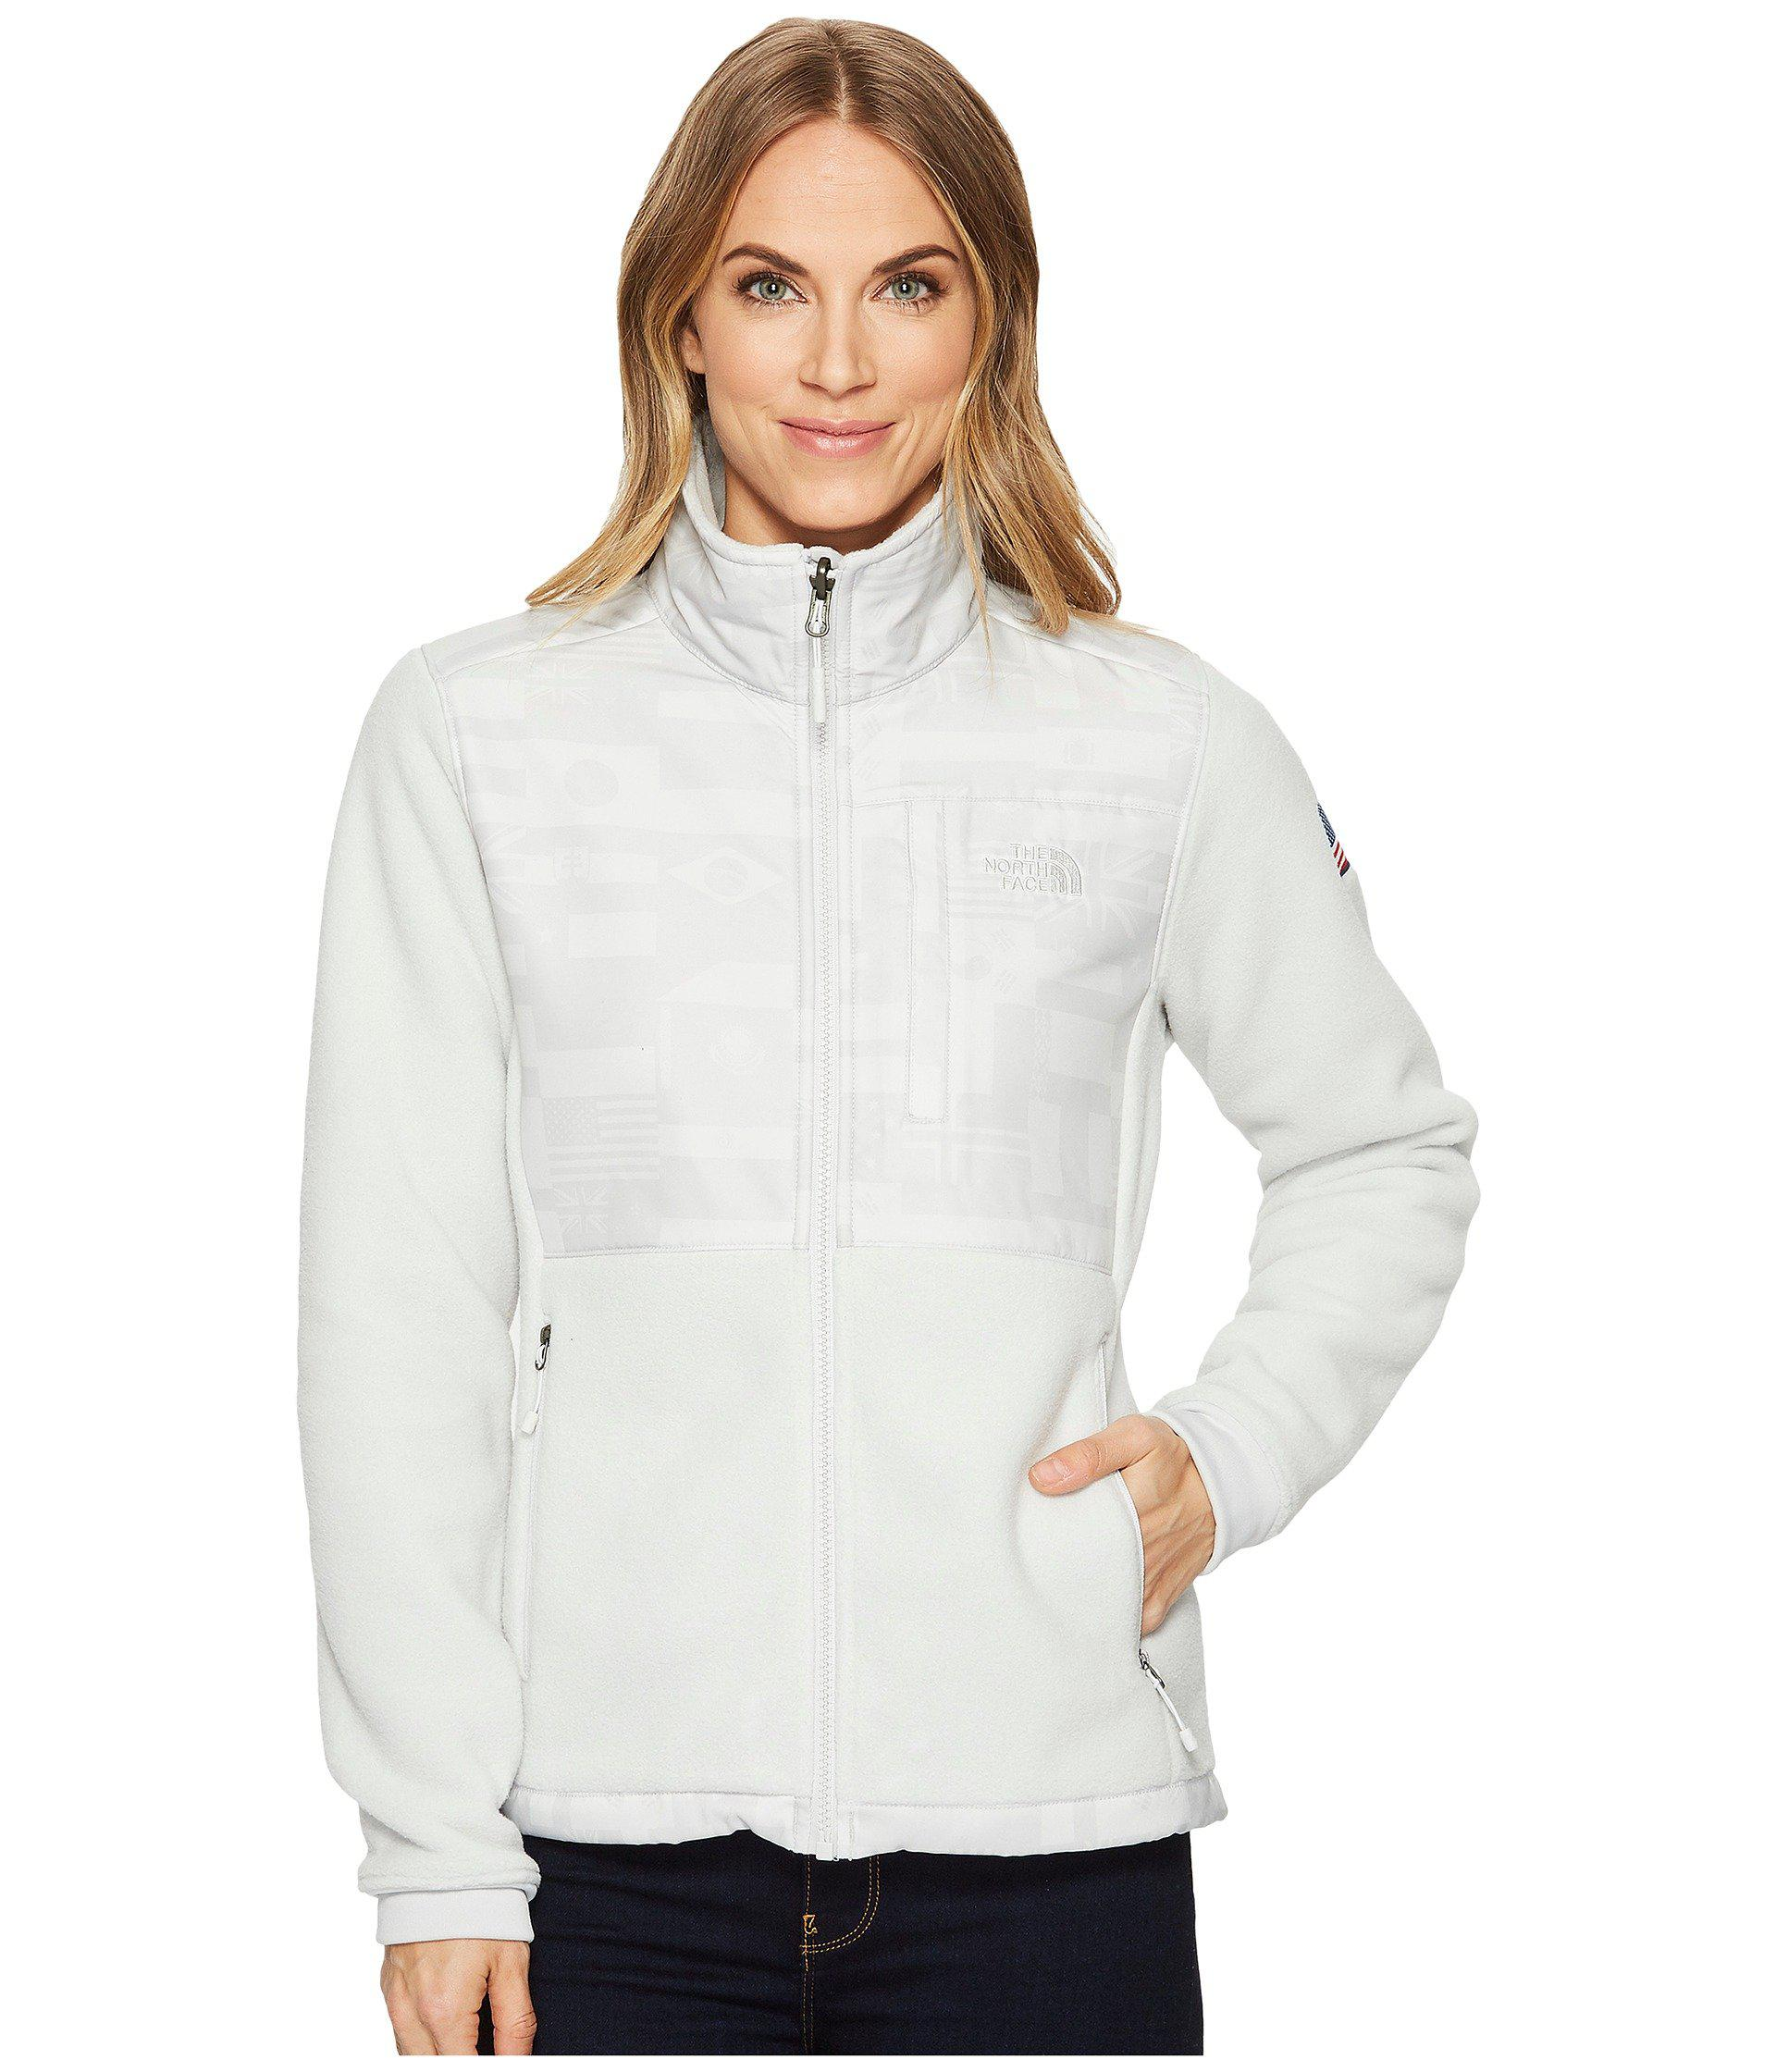 d86c456ac449 Lyst - The North Face International Collection Denali 2 Jacket in ...